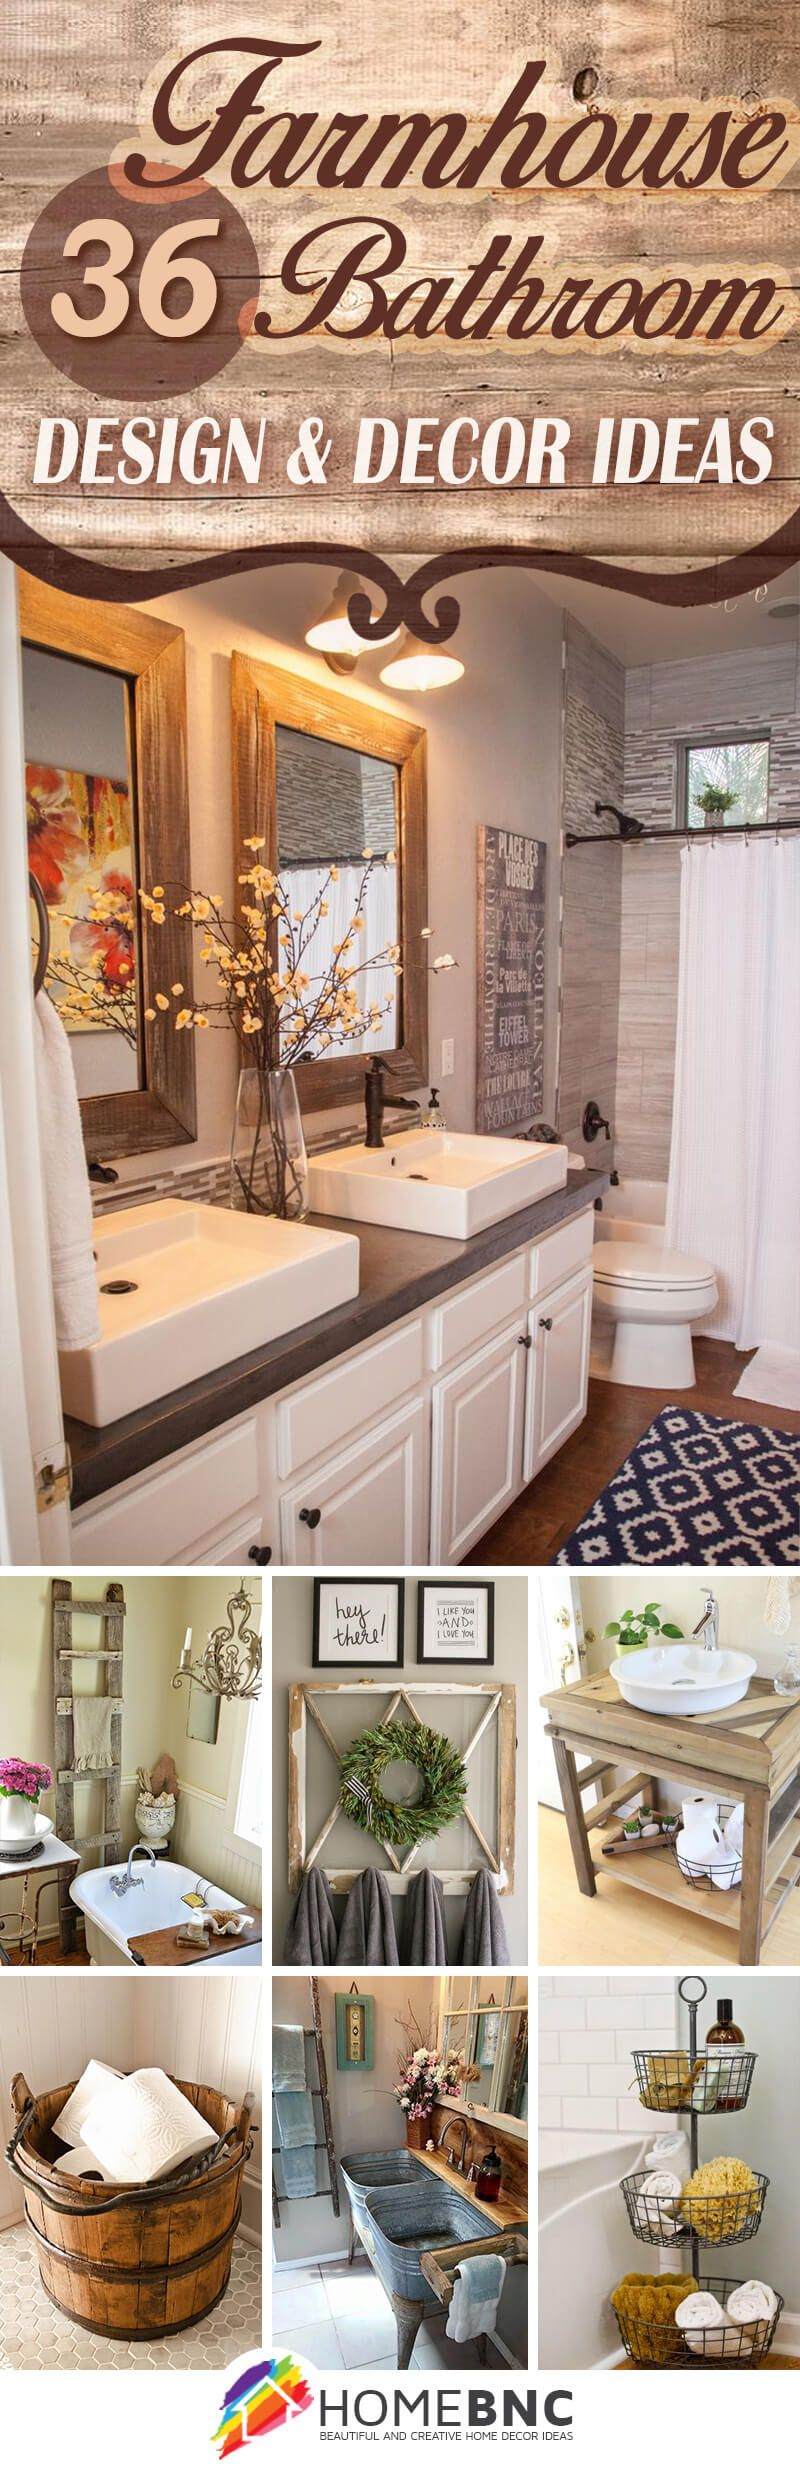 36 beautiful farmhouse bathroom design and decor ideas you. Black Bedroom Furniture Sets. Home Design Ideas